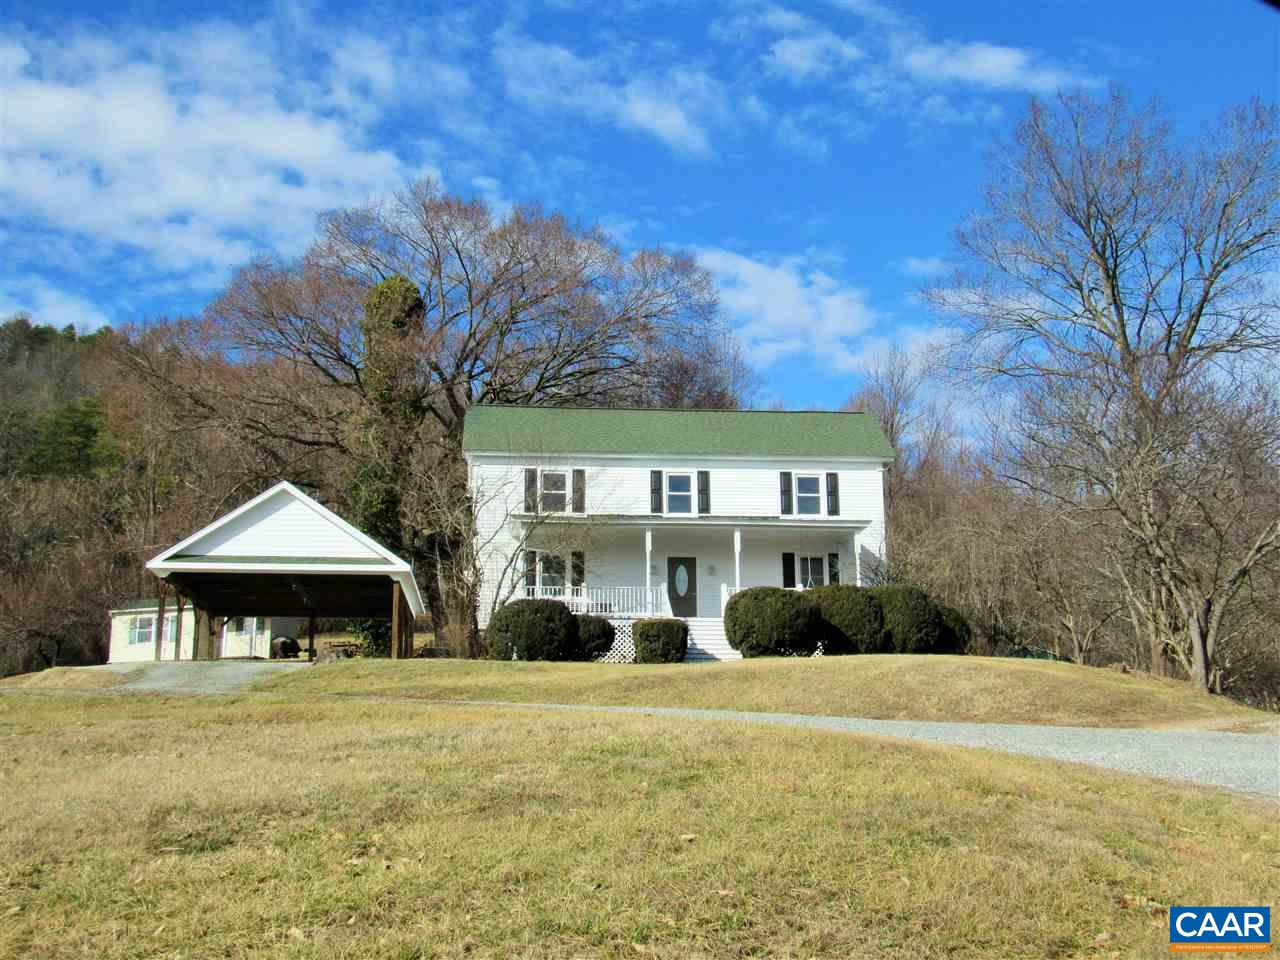 home for sale , MLS #571952, 188 Dyson Rd